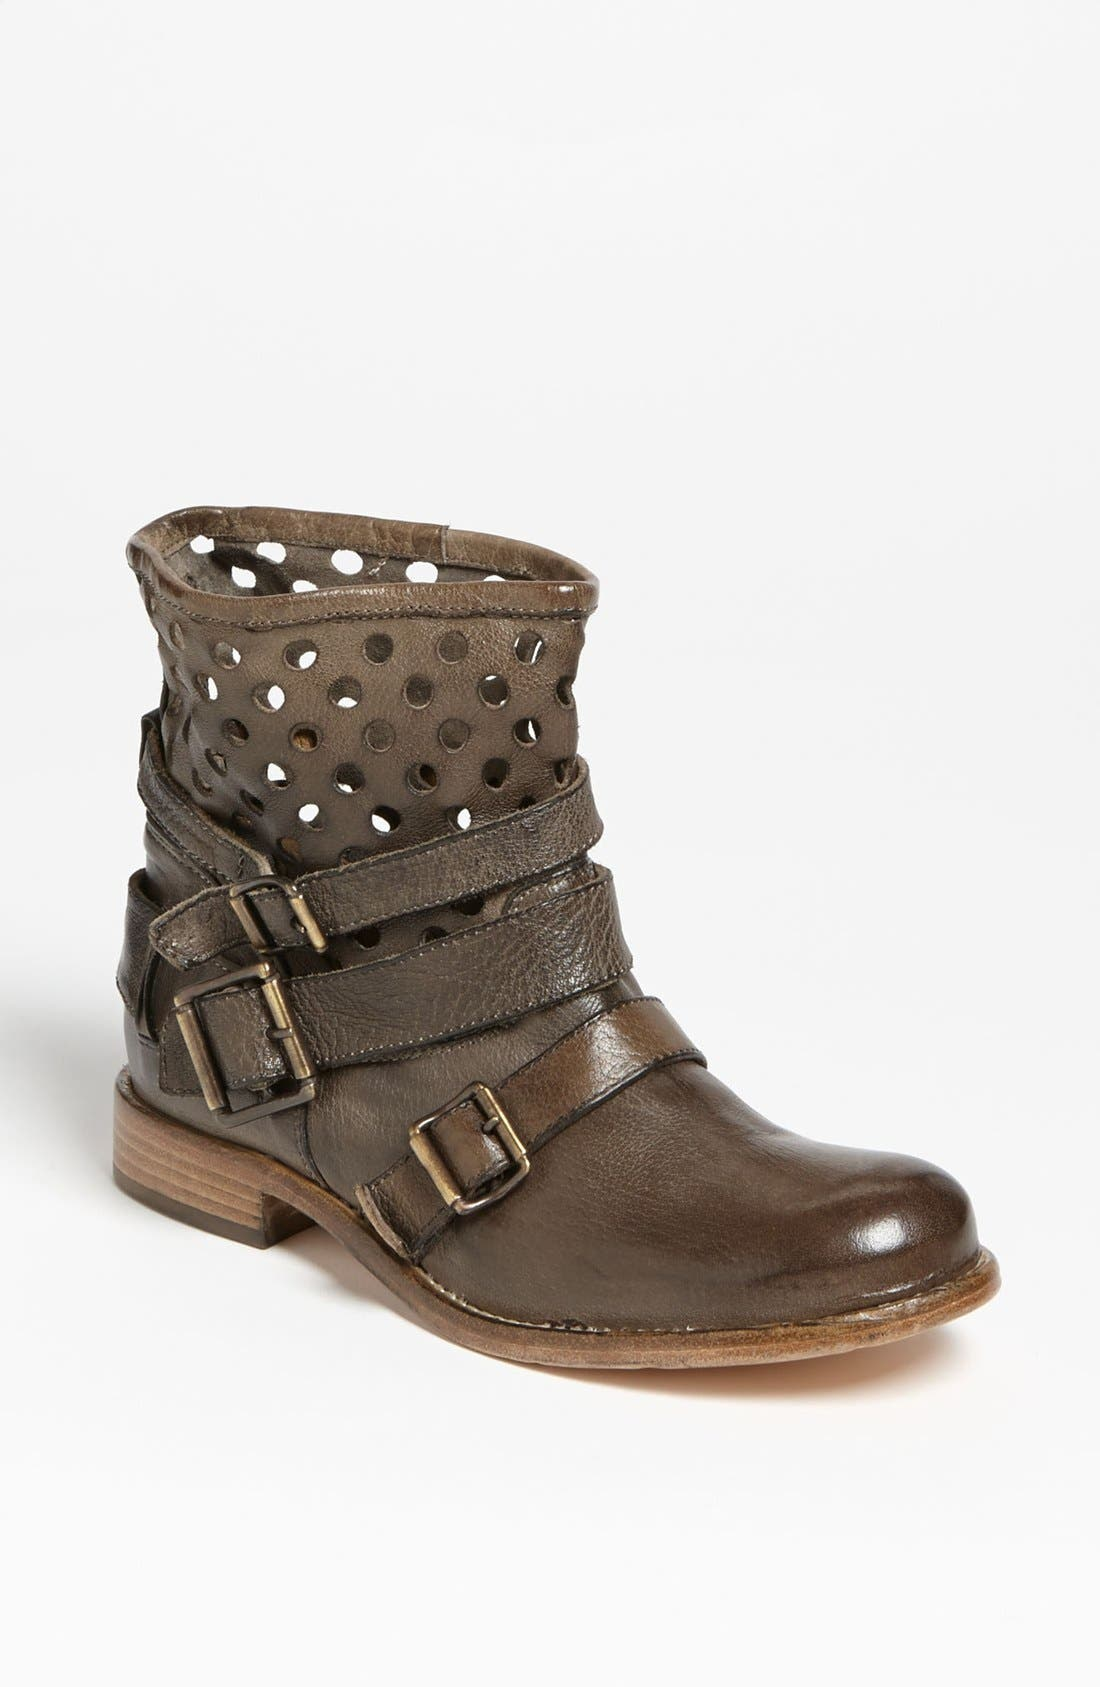 Main Image - Giove Perforated Ankle Boot